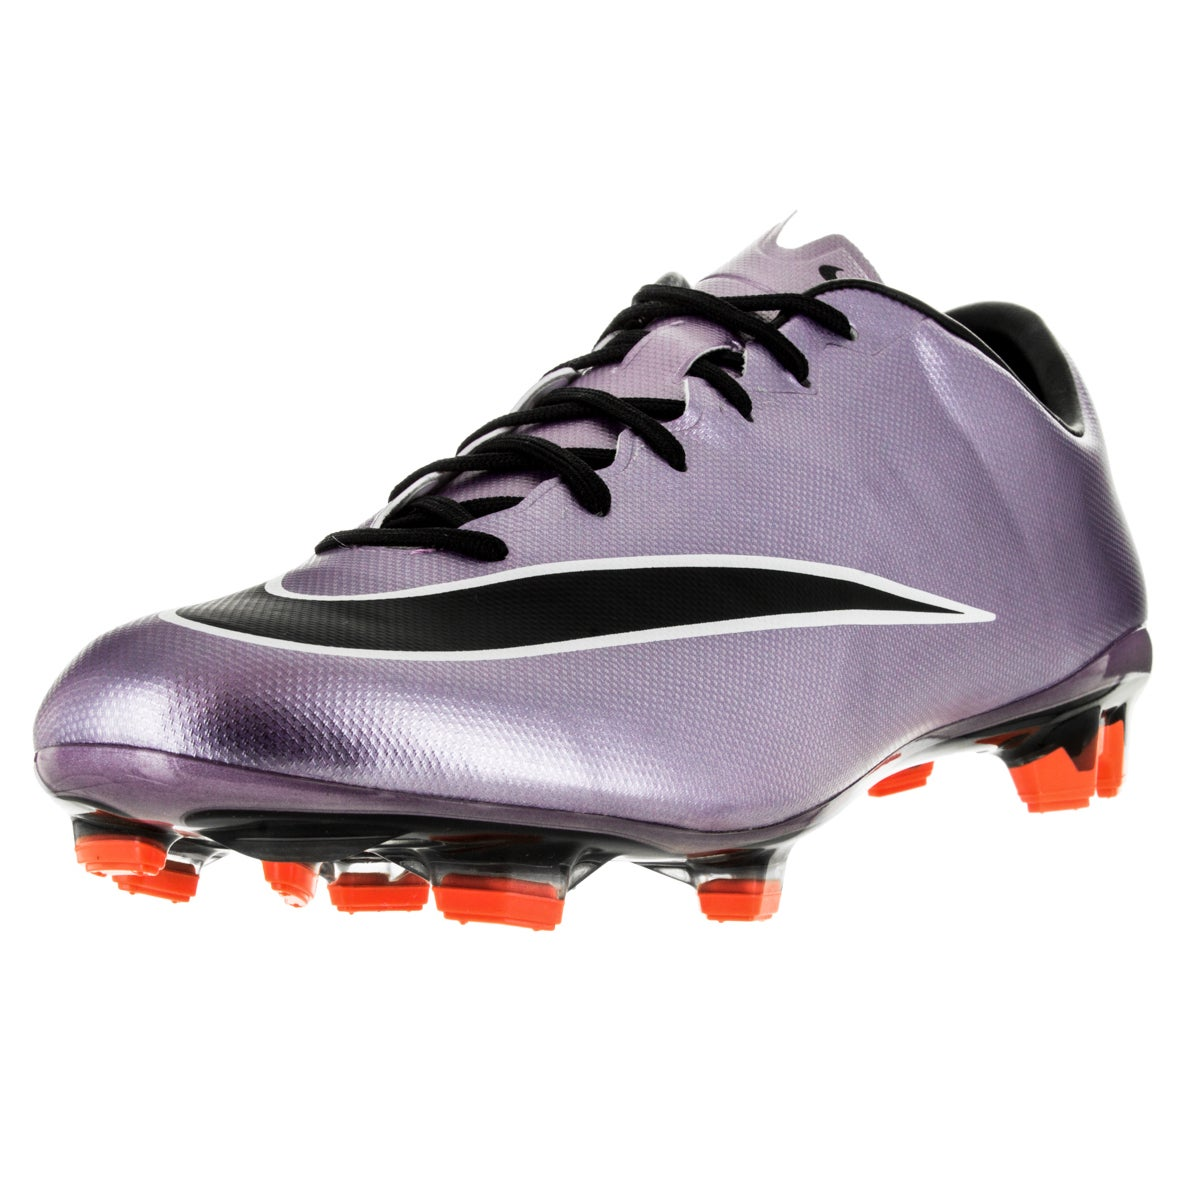 Nike Men's Mercurial Veloce Ii Fg Urban Lilac/Black/Brigh...